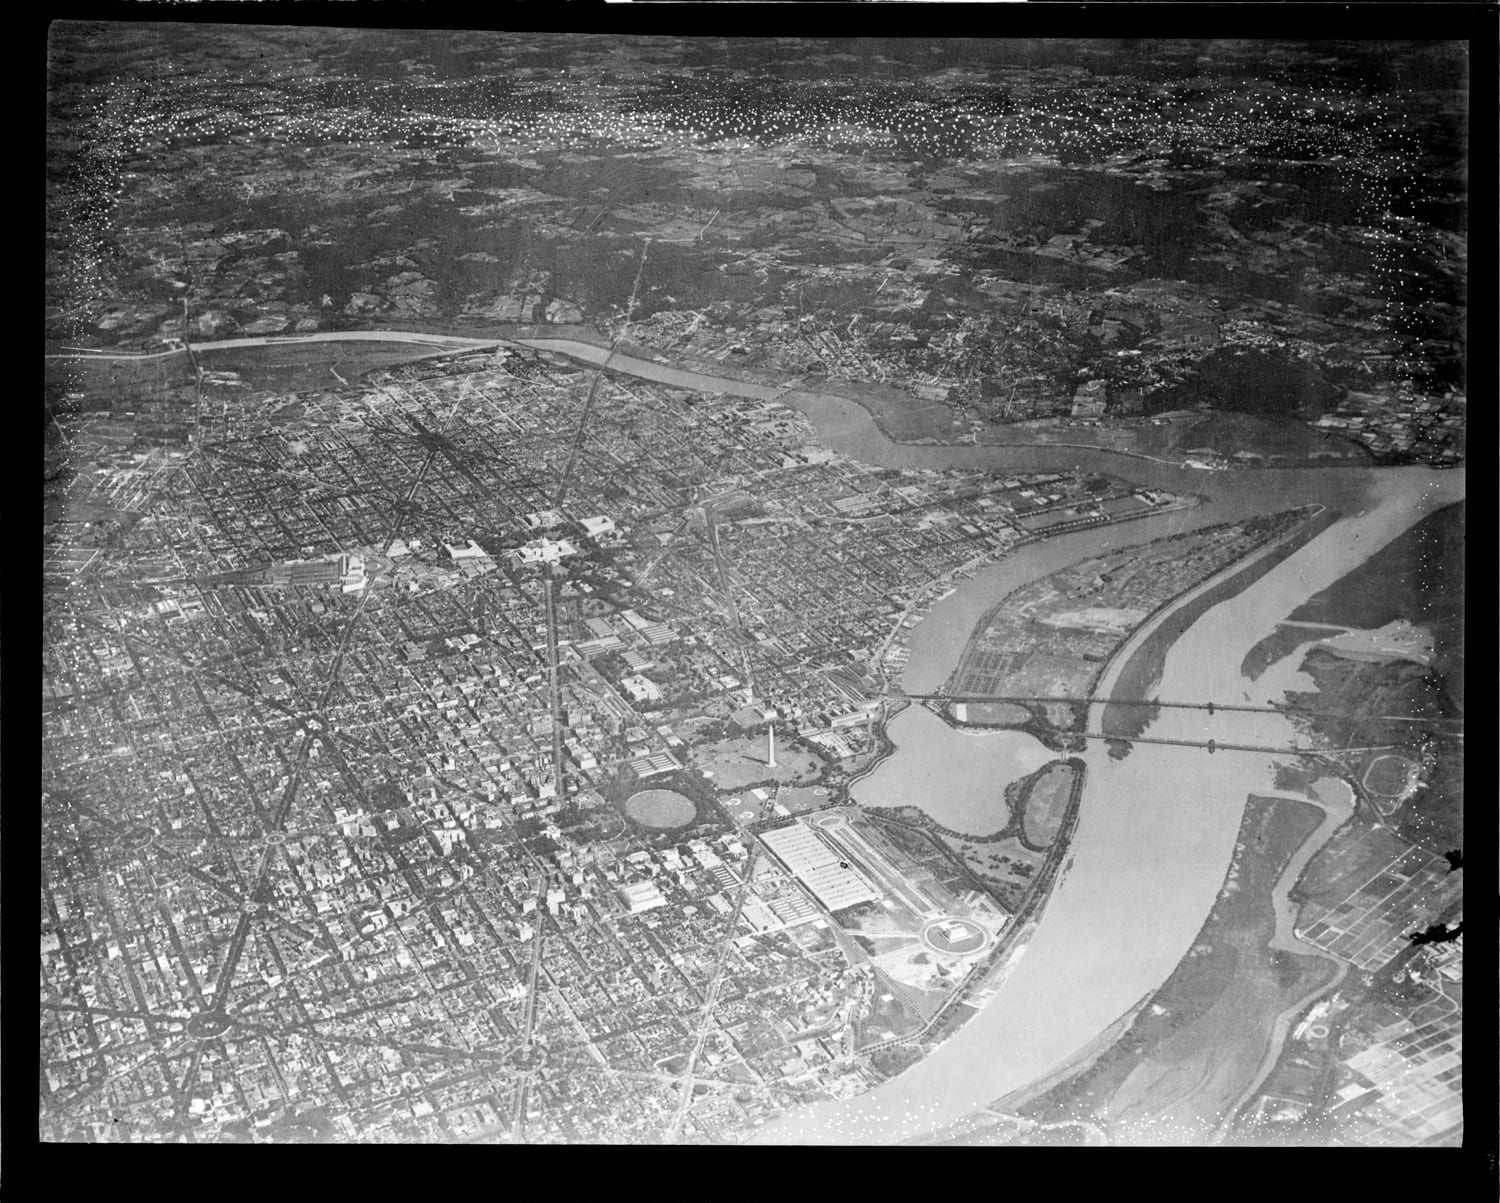 Aerial view of D.C. in 1922